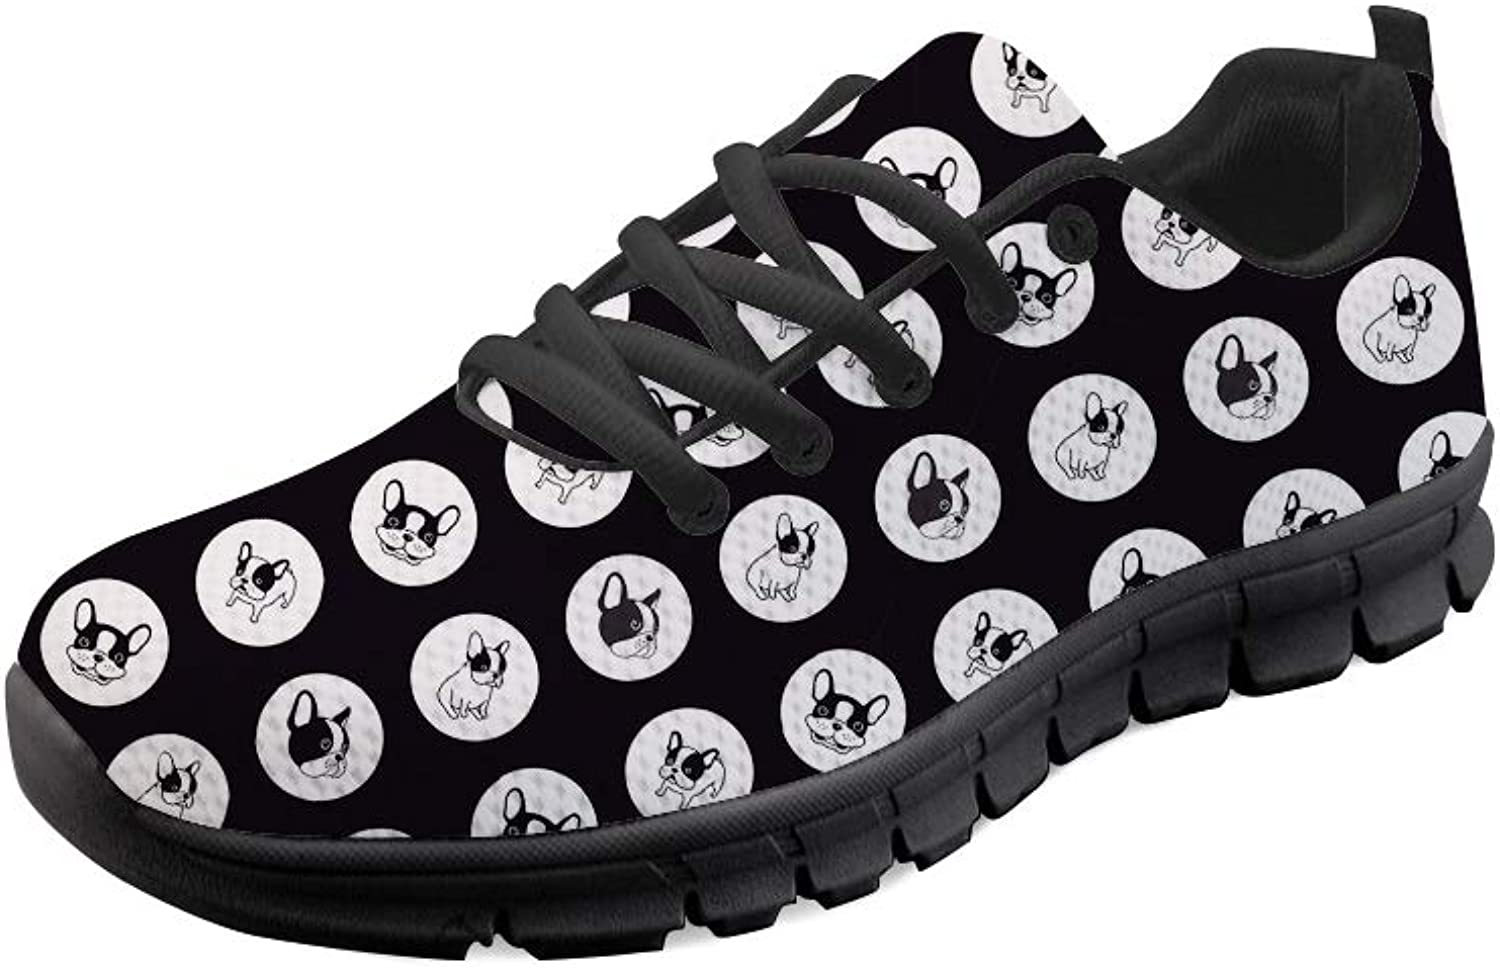 HUGS IDEA colors Animal Printed Sneakers Fitness Workout Running Walking Jogging Fashion Casual Women's shoes